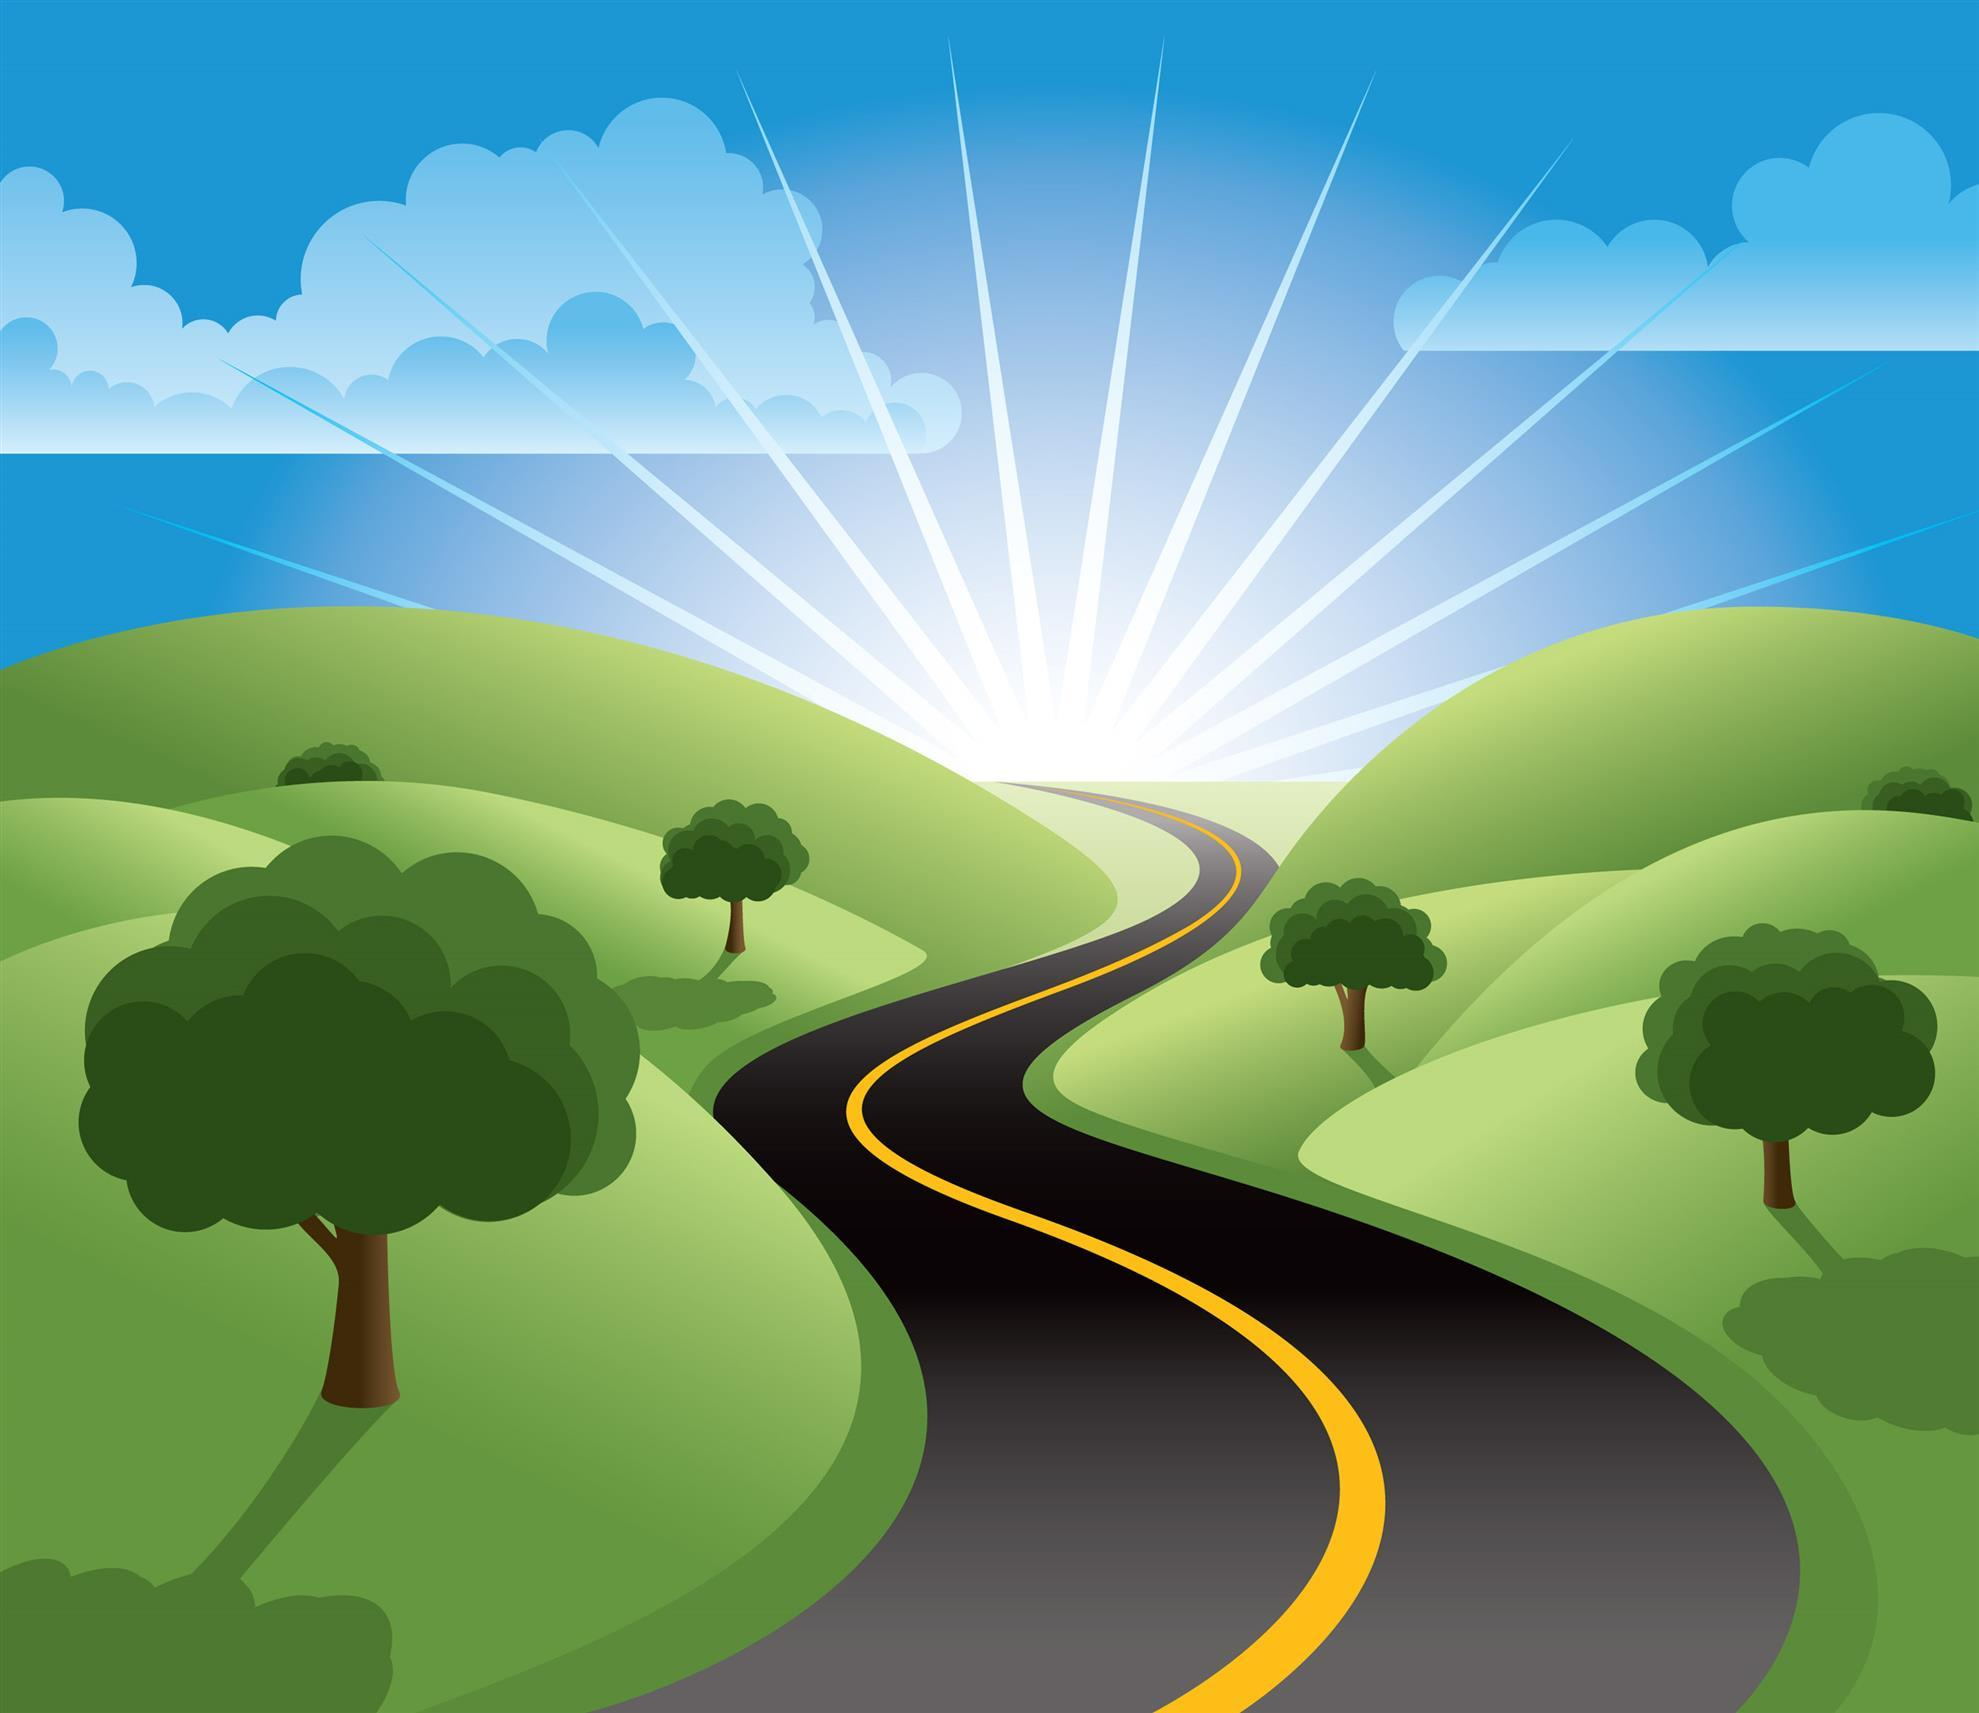 On the road again clipart 4 » Clipart Portal.